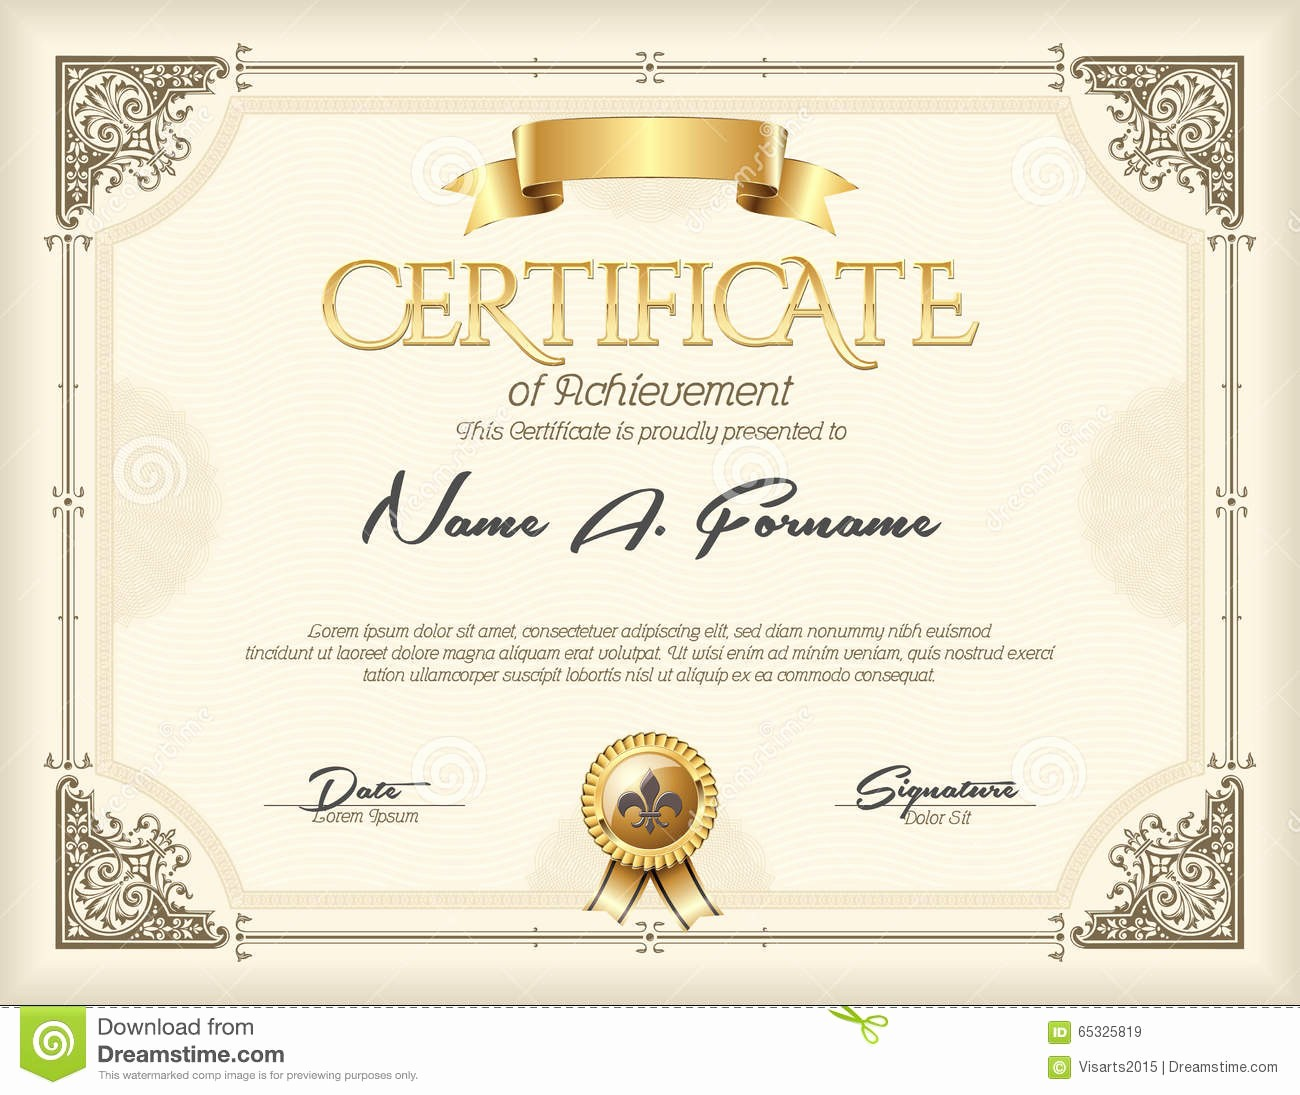 What is Certificate Of Achievement Awesome Certificate Achievement Vintage Gold Frame Stock Vector